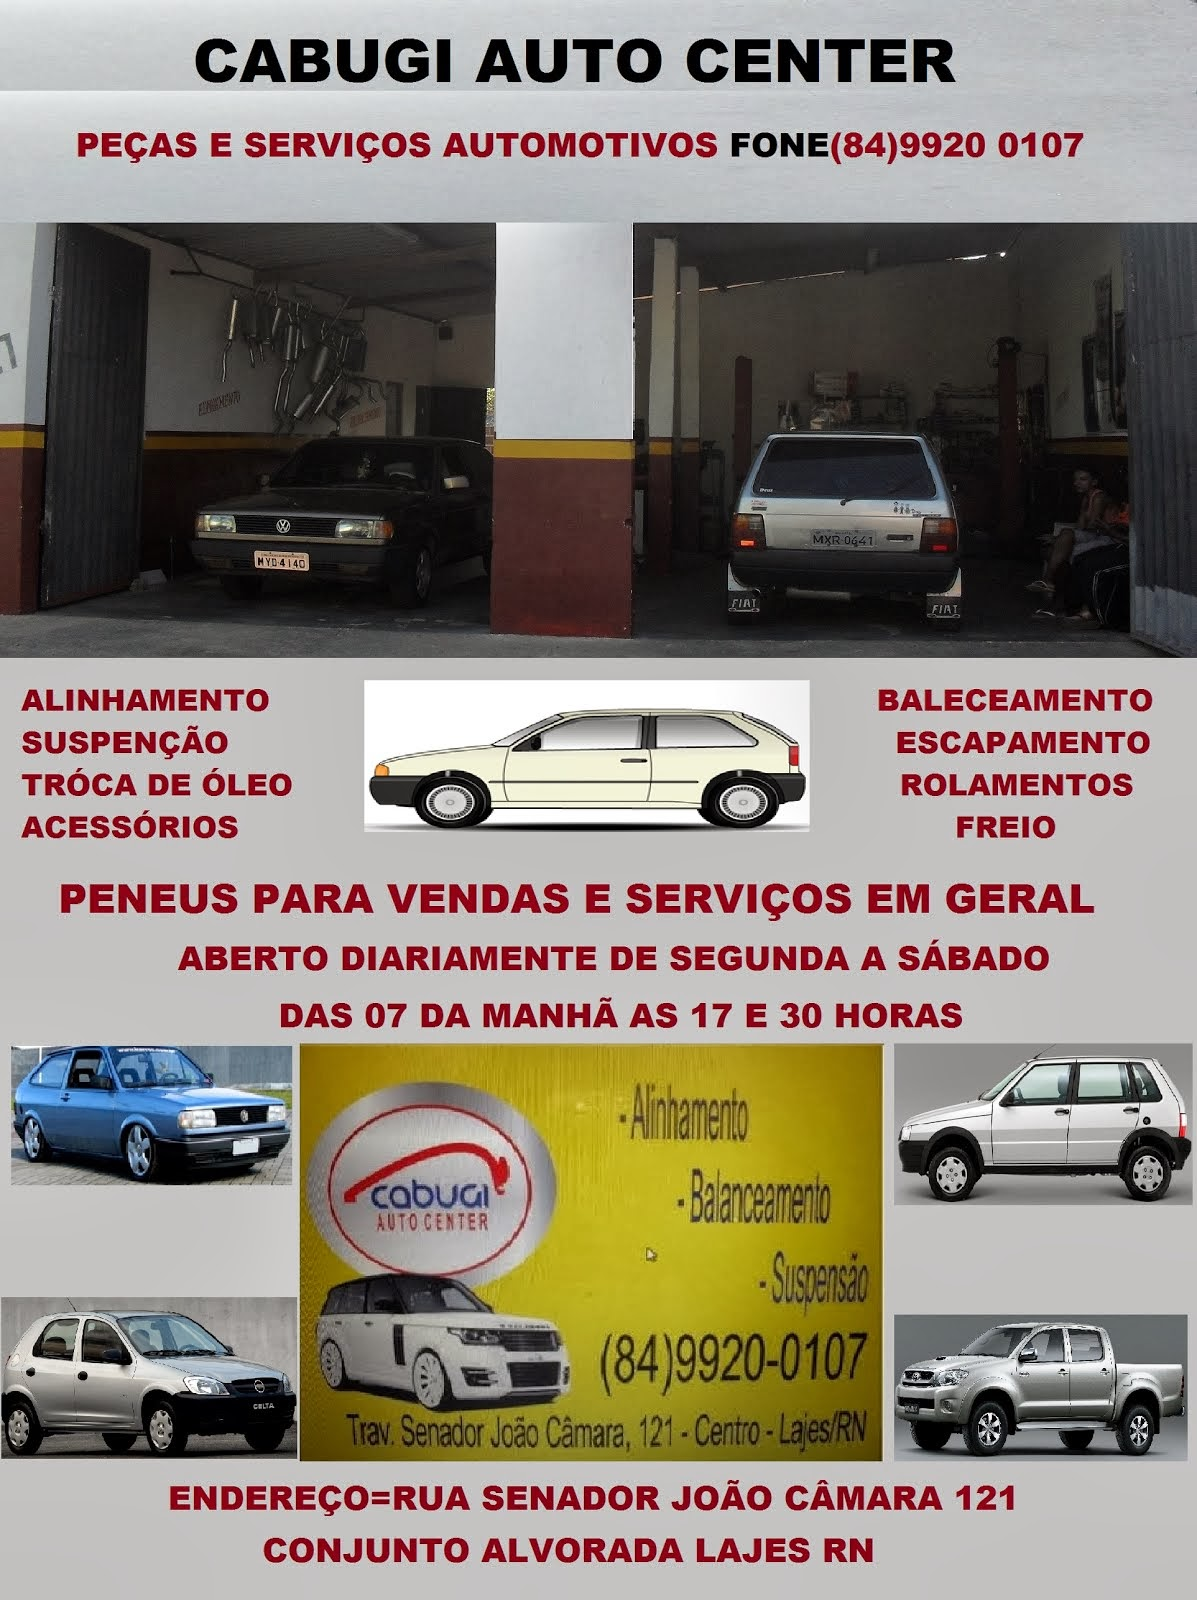 CABUGI AUTO CENTER LAJES RN